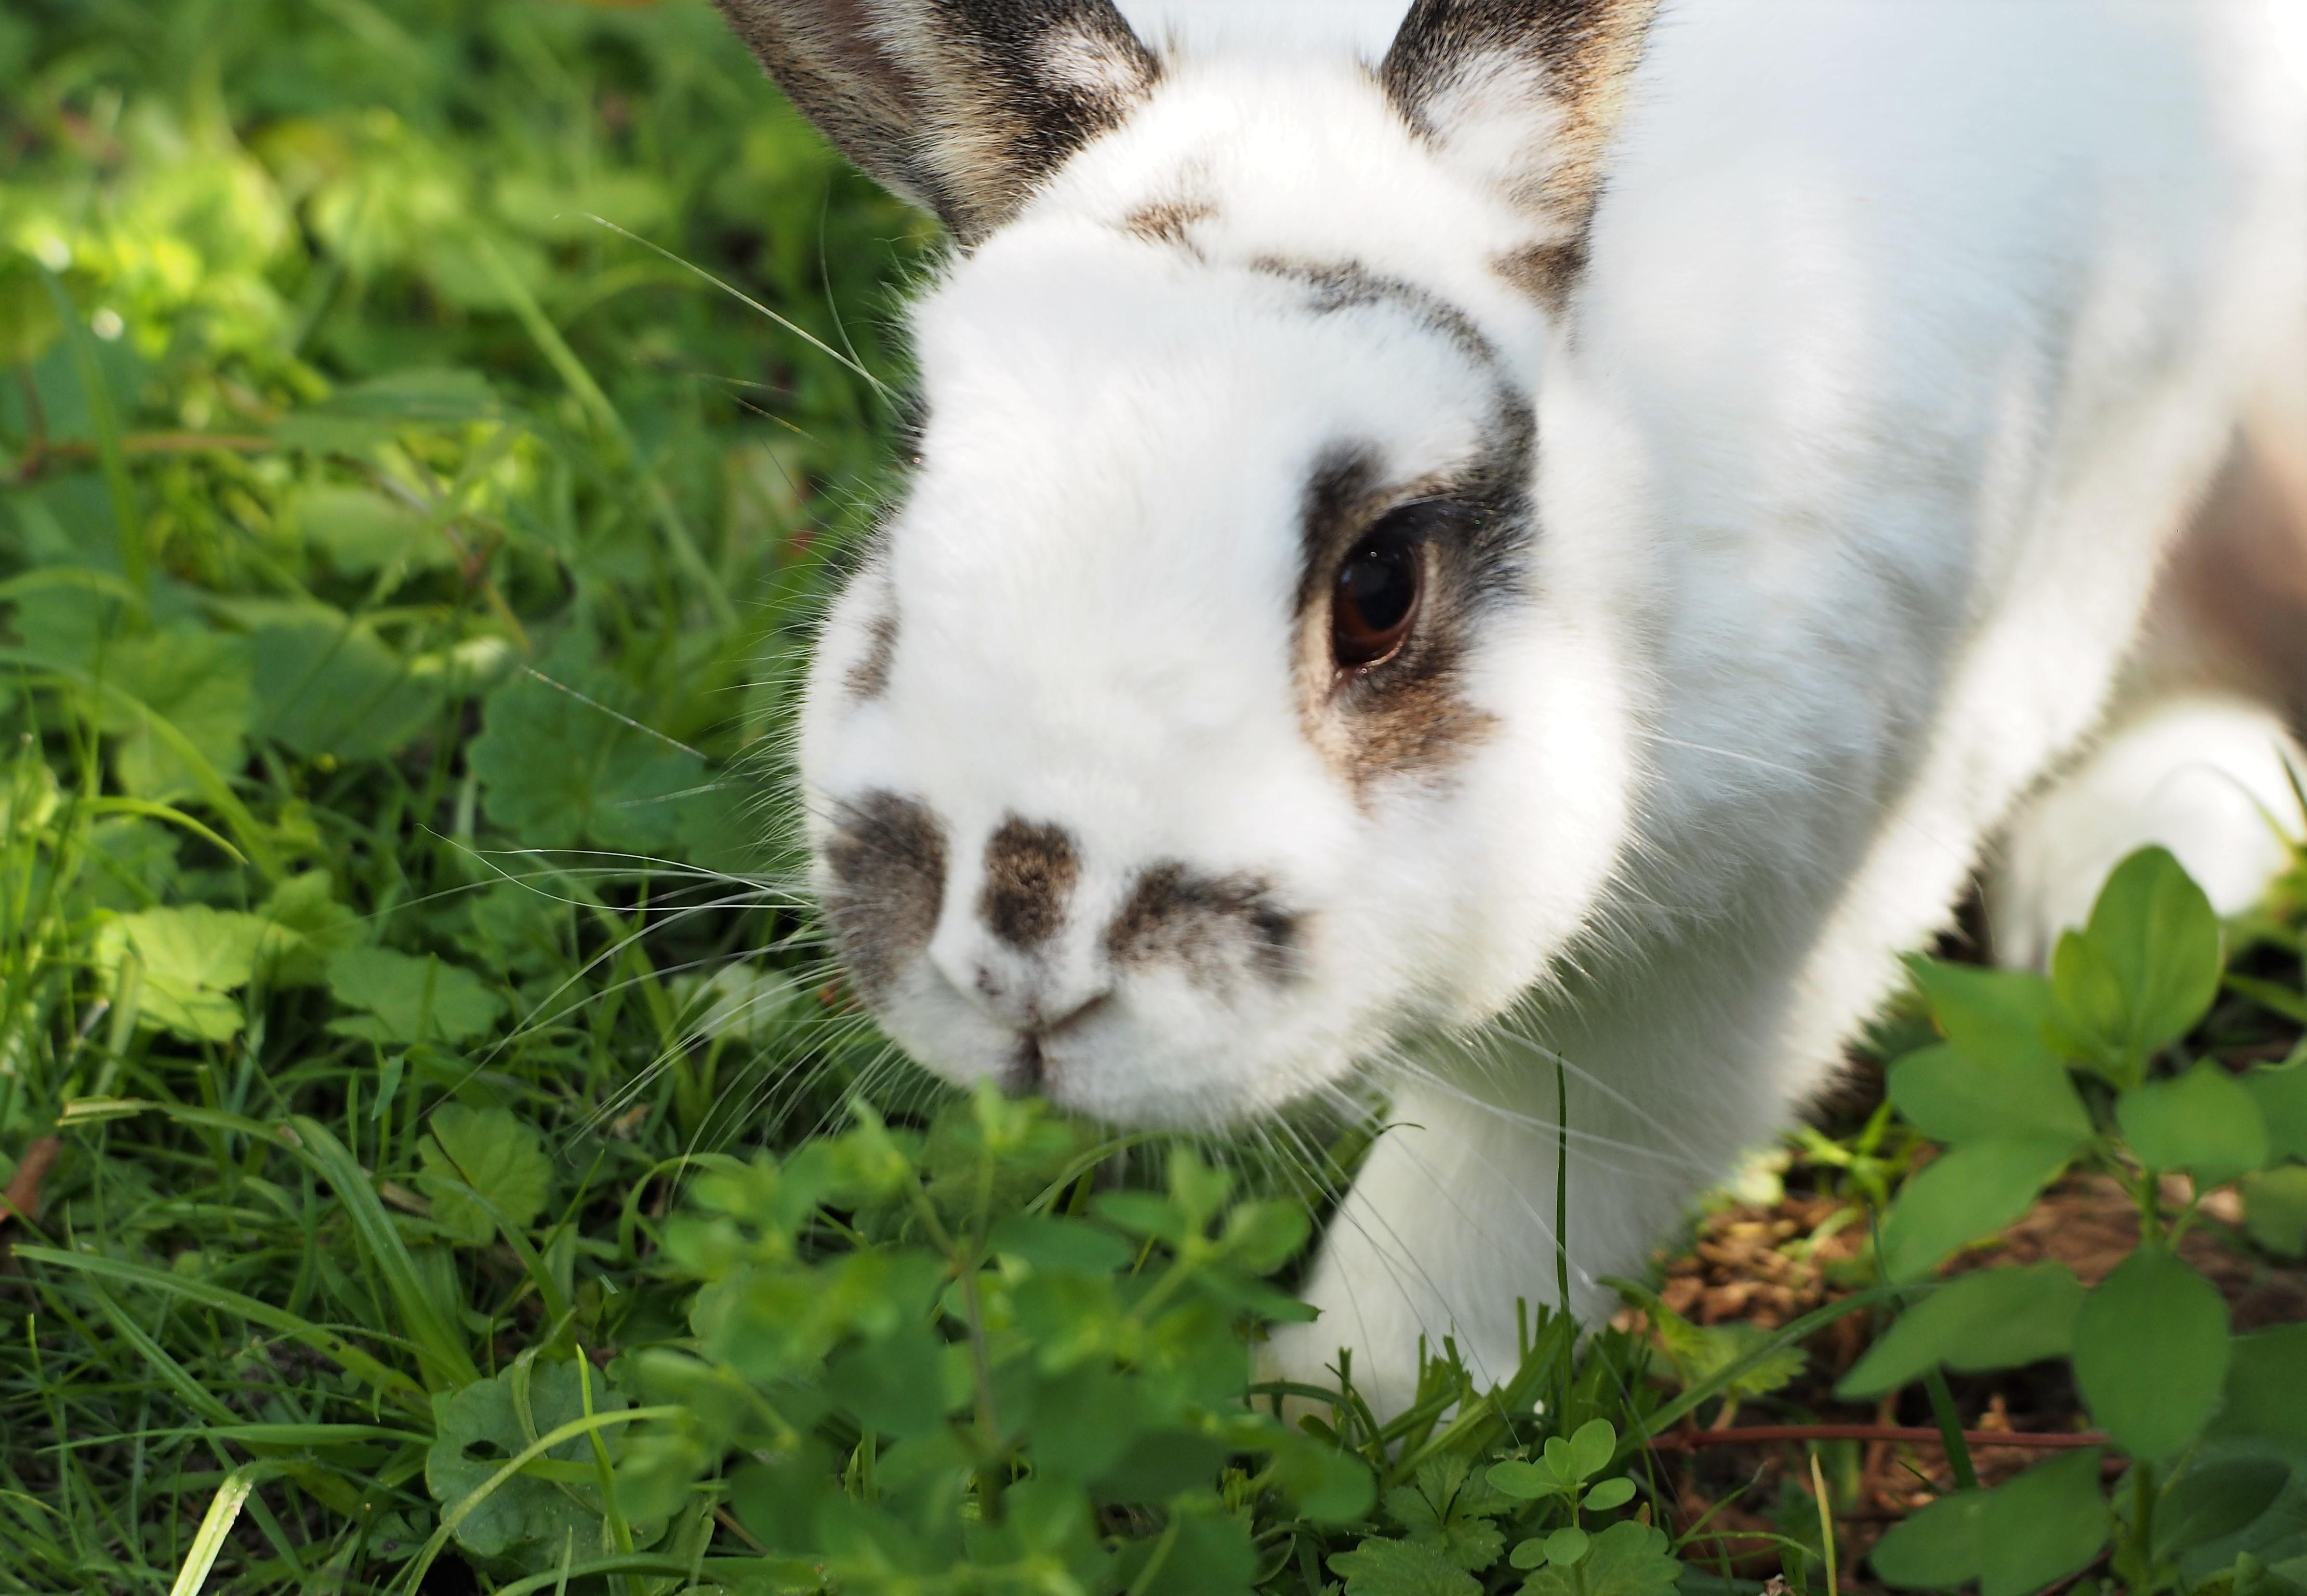 Close up of a white rabbit